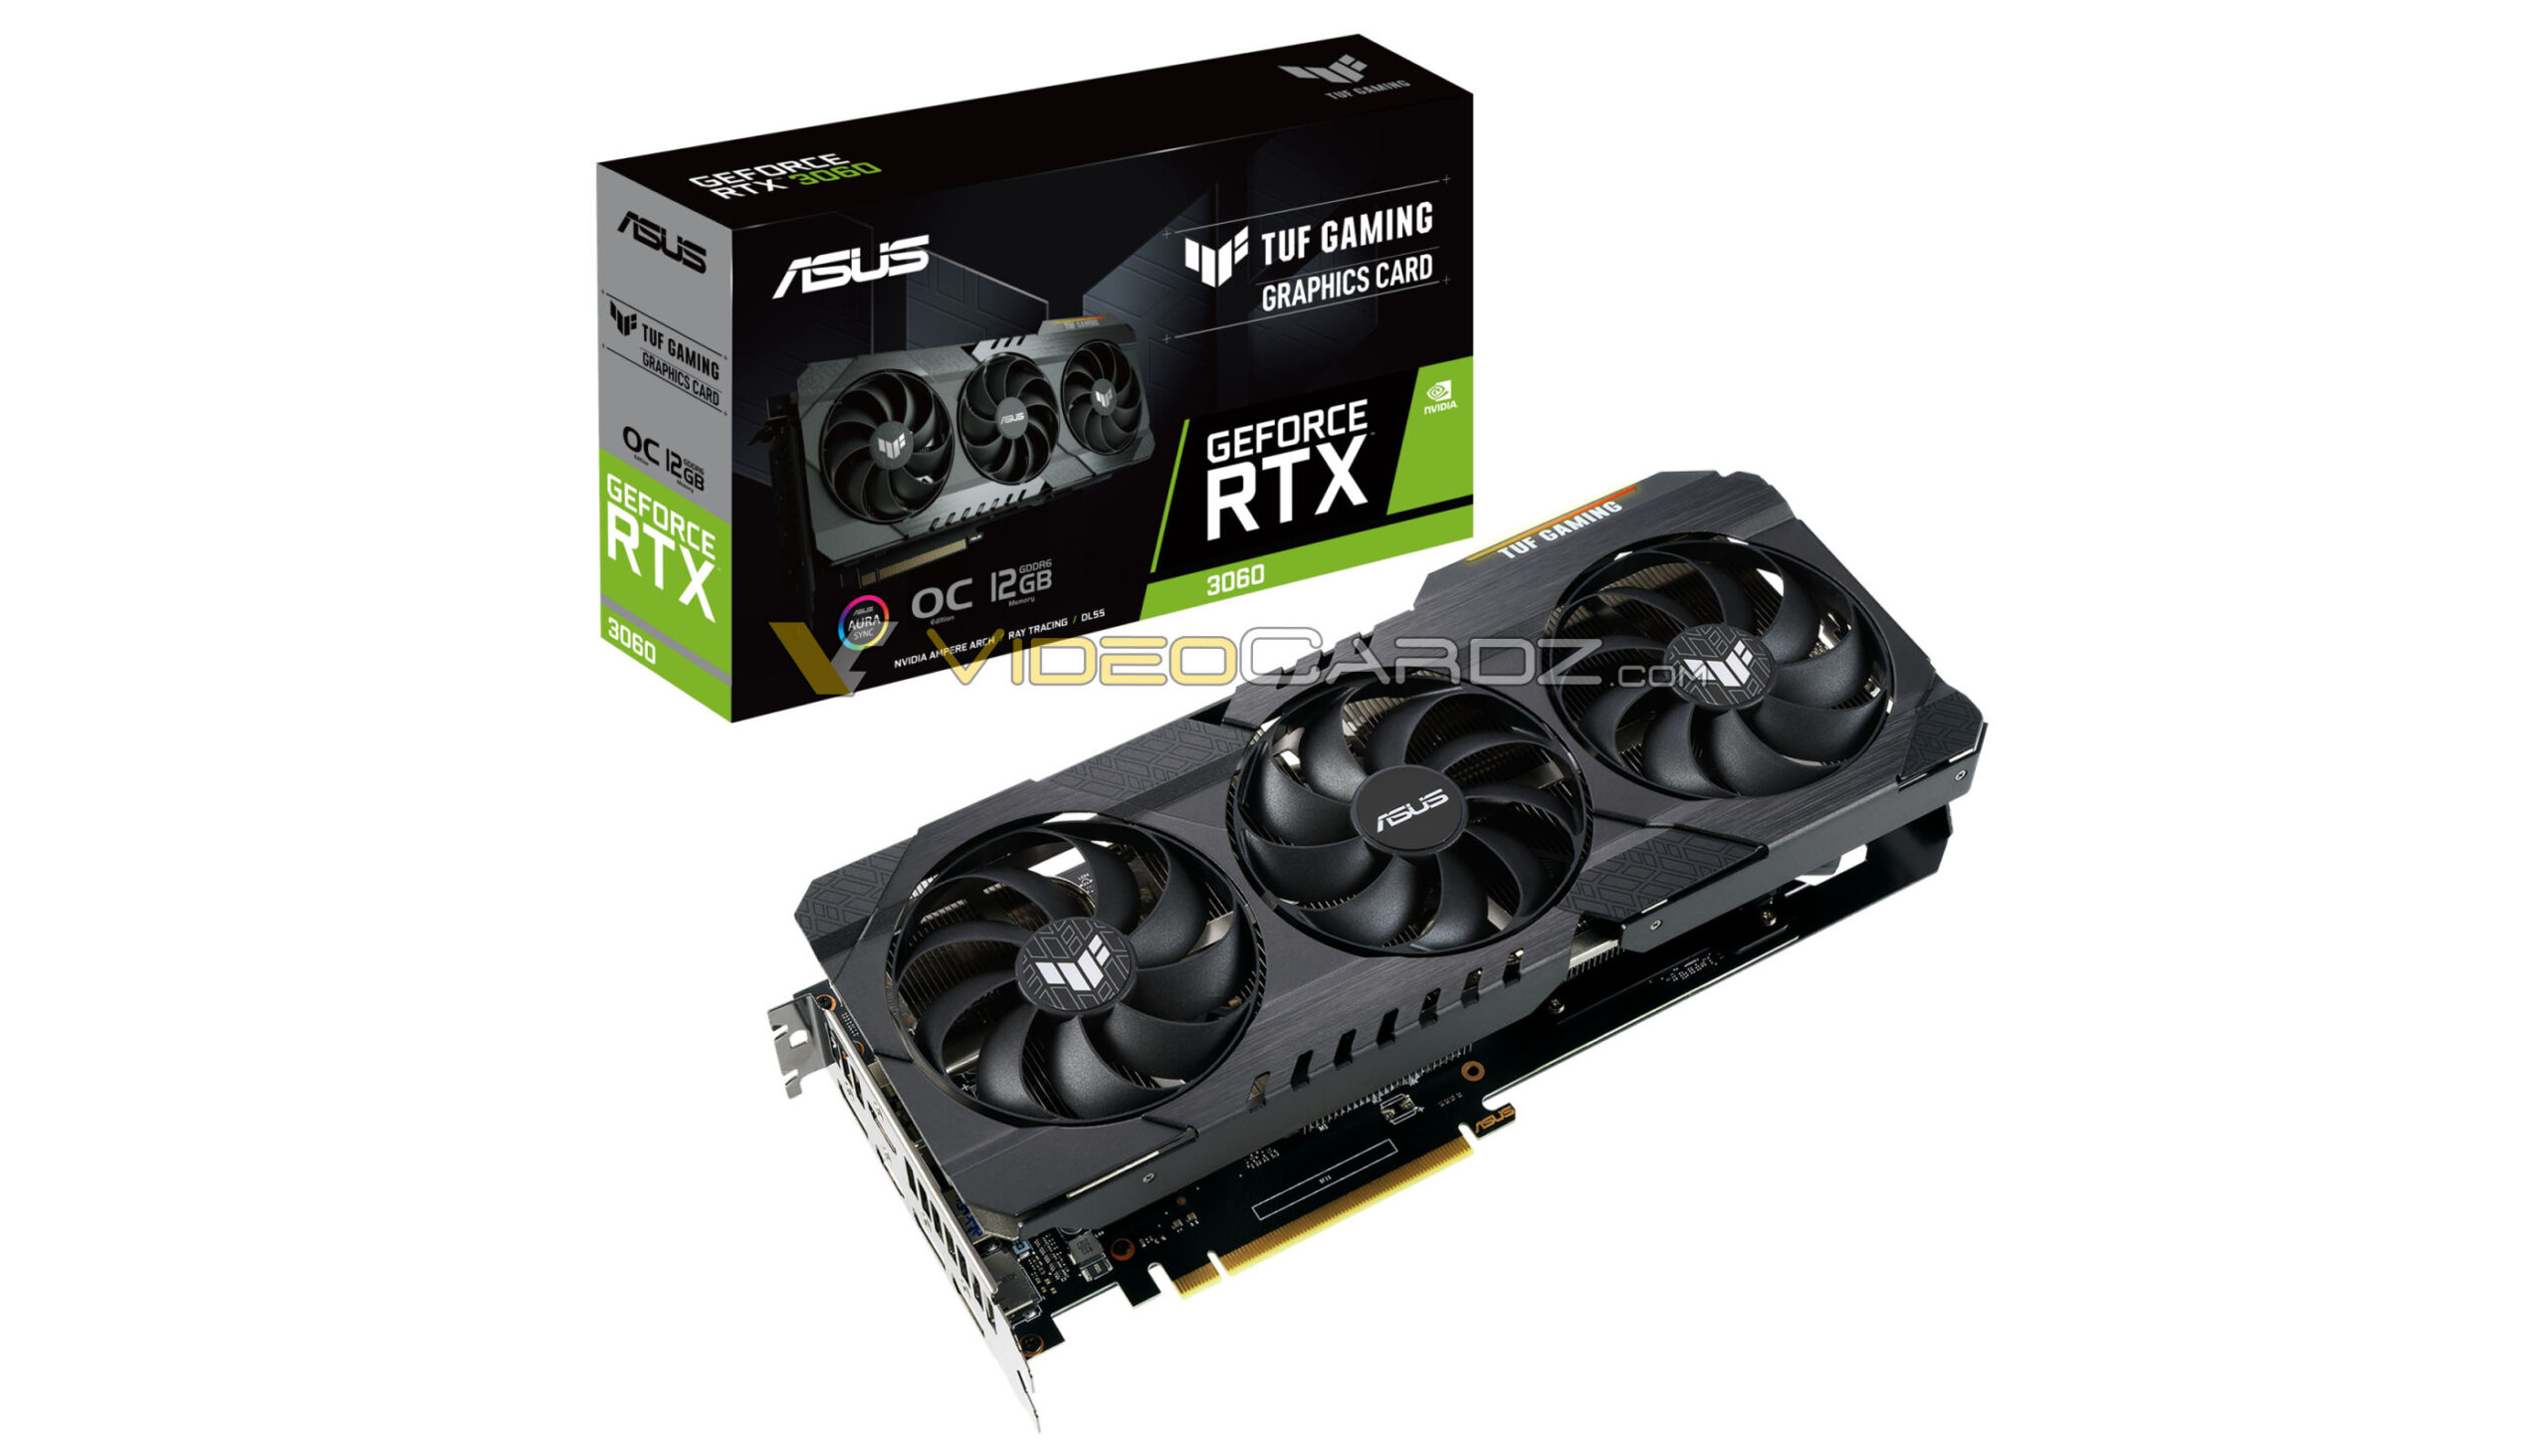 ASUS GeForce RTX 3060 TUF Gaming with 12GB gddr6 memory